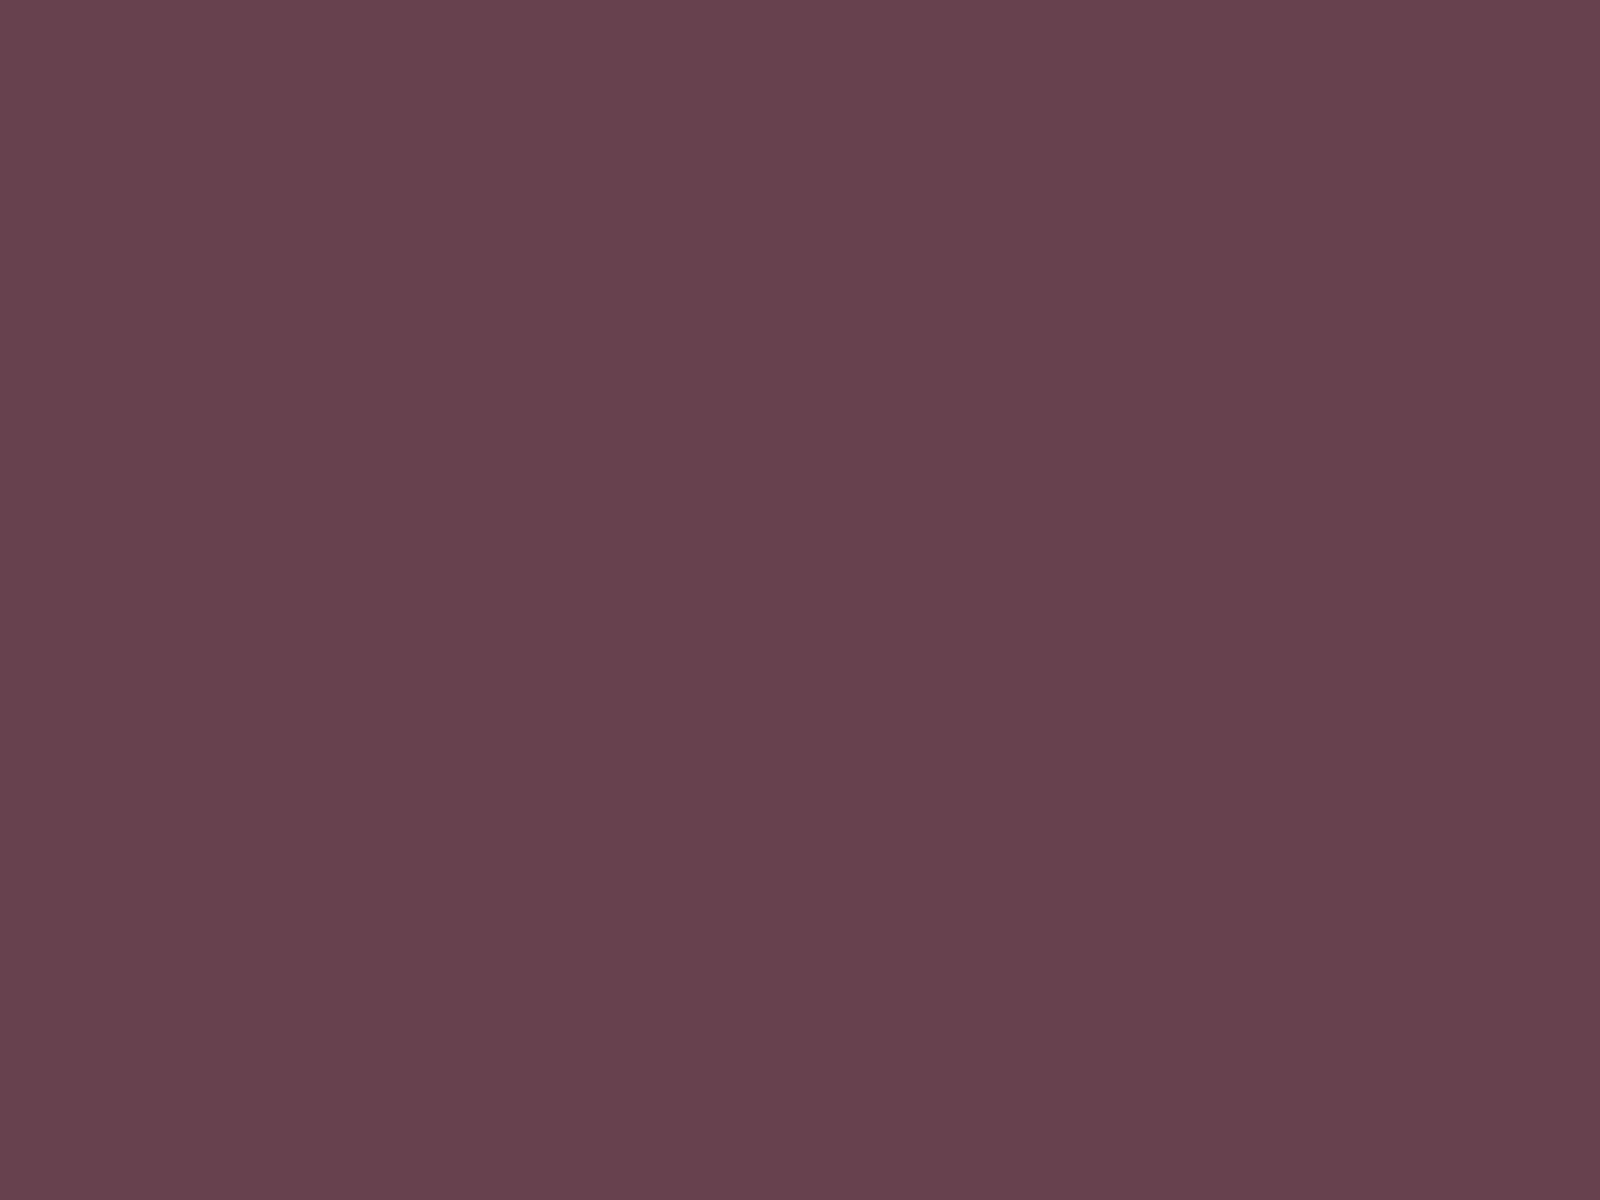 1600x1200 Deep Tuscan Red Solid Color Background